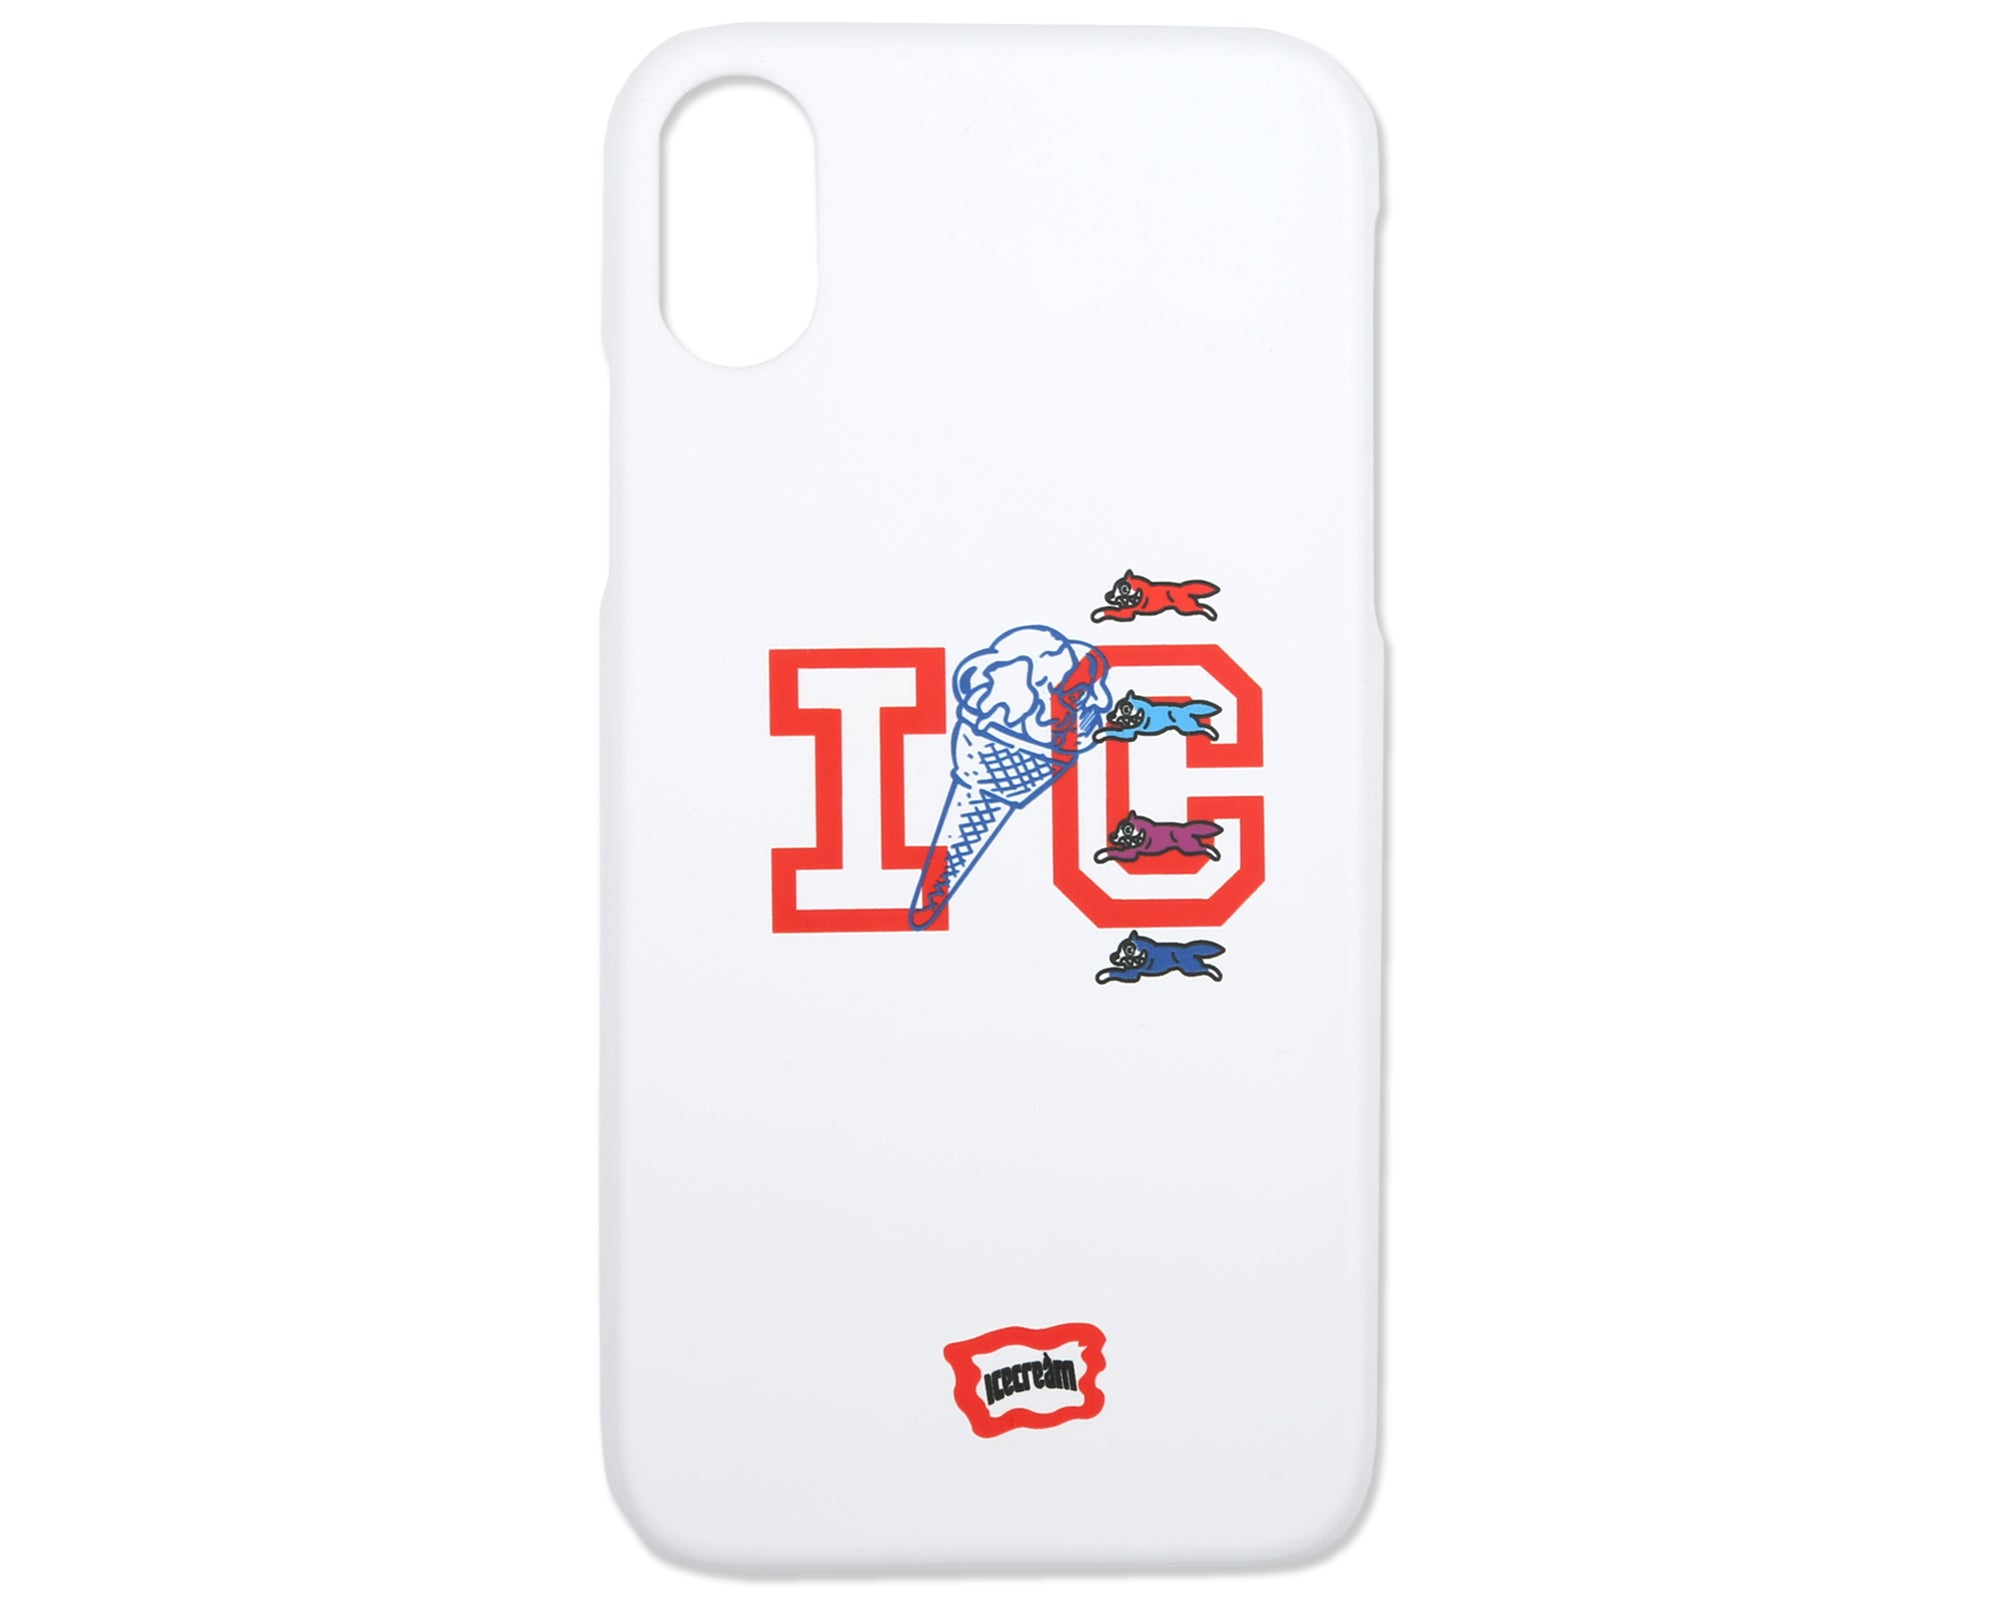 ICECREAM IPHONE CASE - WHITE